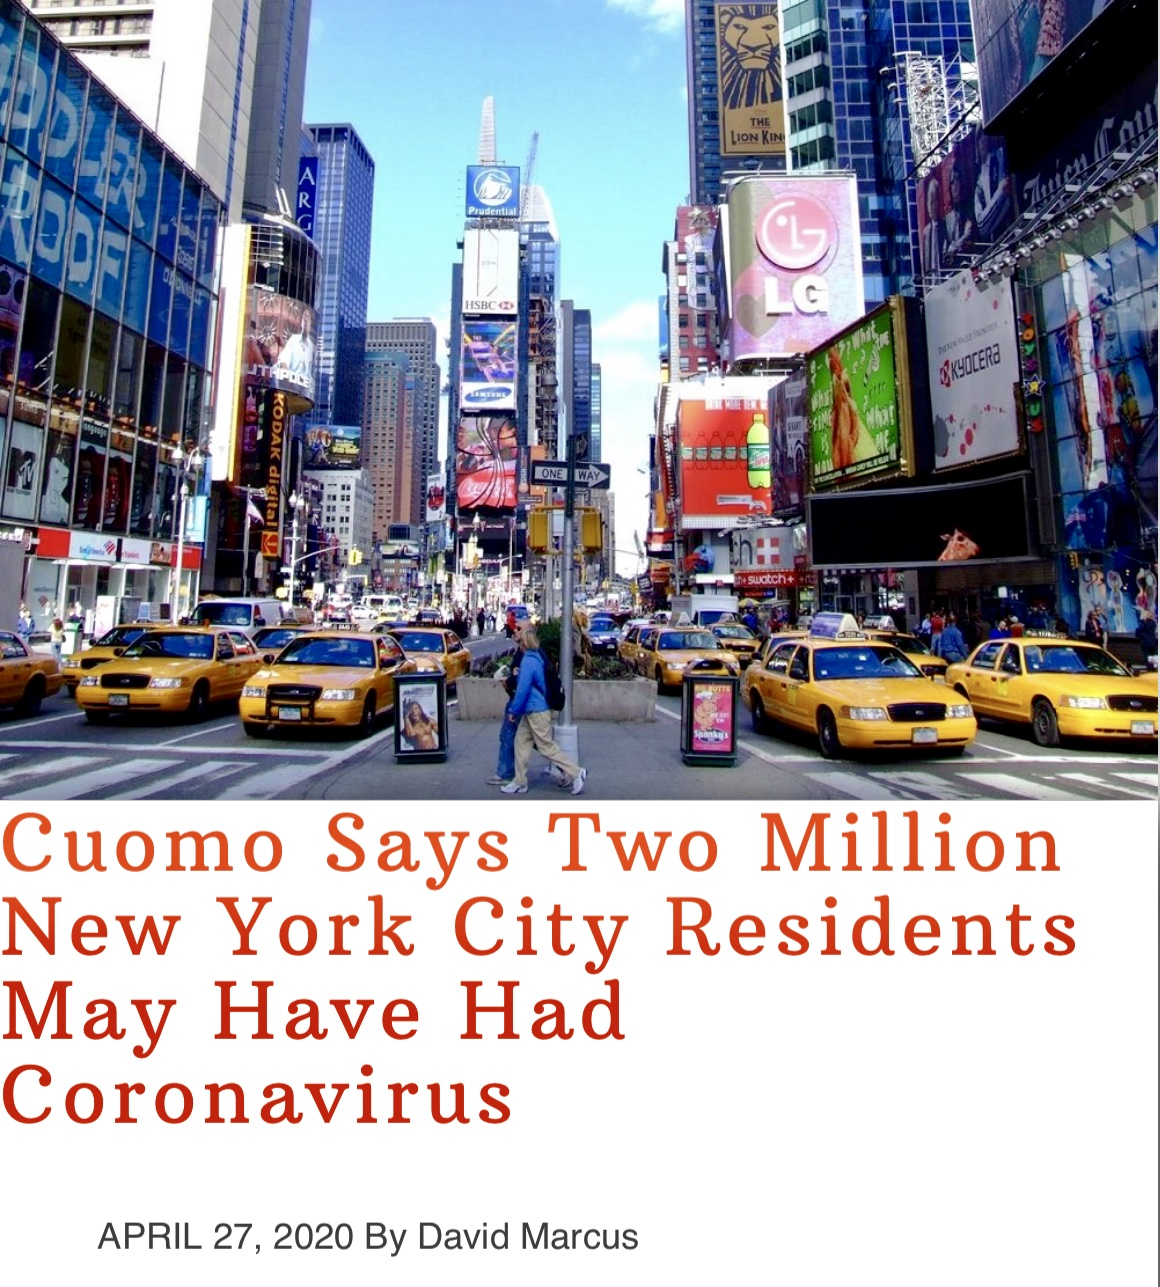 Cuomo Says Two Million New York City Residents May Have Had Coronavirus